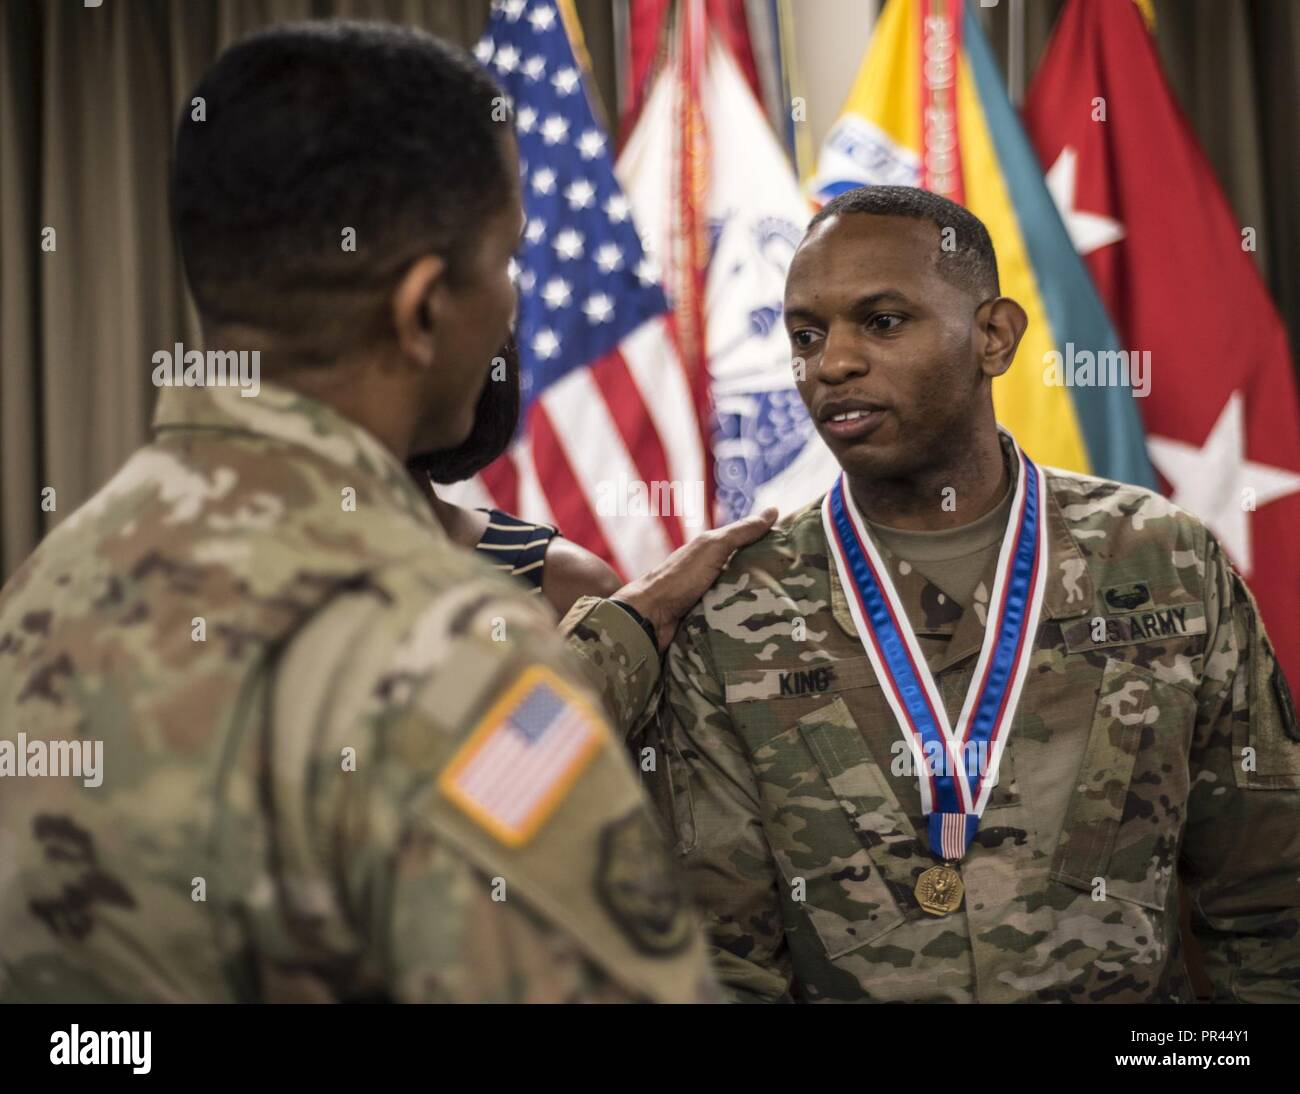 Sgt 1st Class Mario King Us Army Human Resources Command